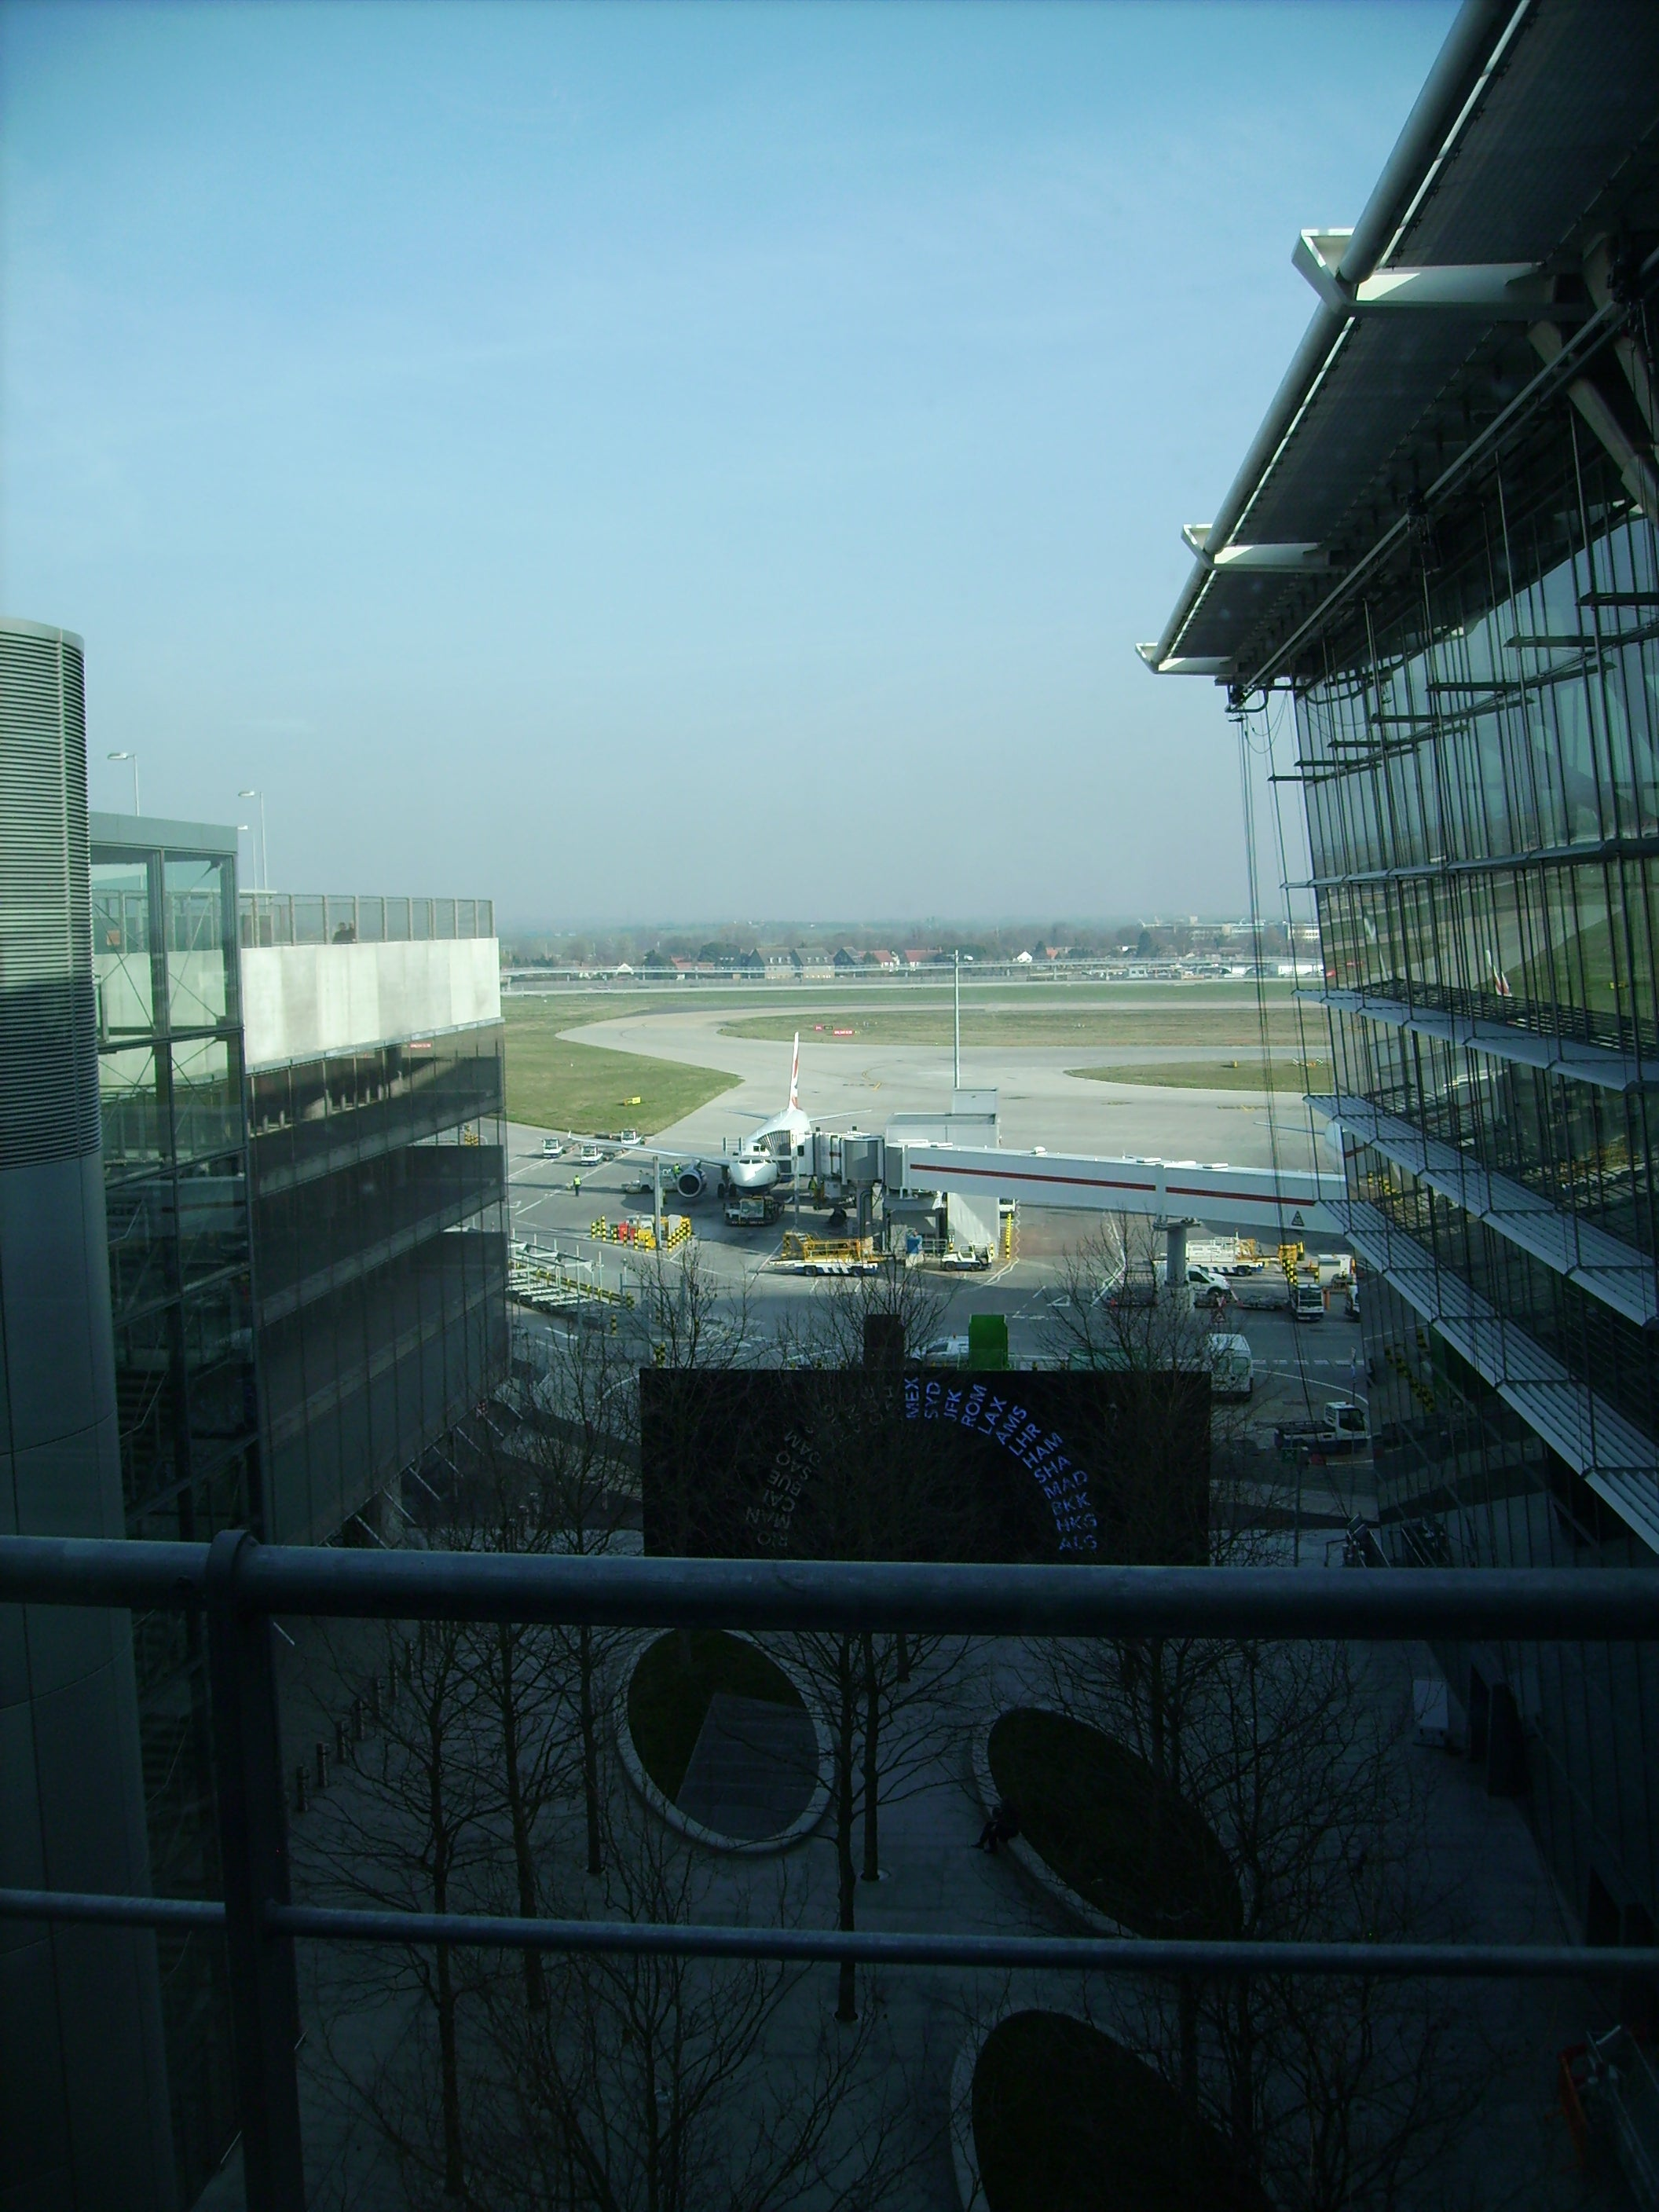 Mar en Aeropuerto de Londres - Heathrow